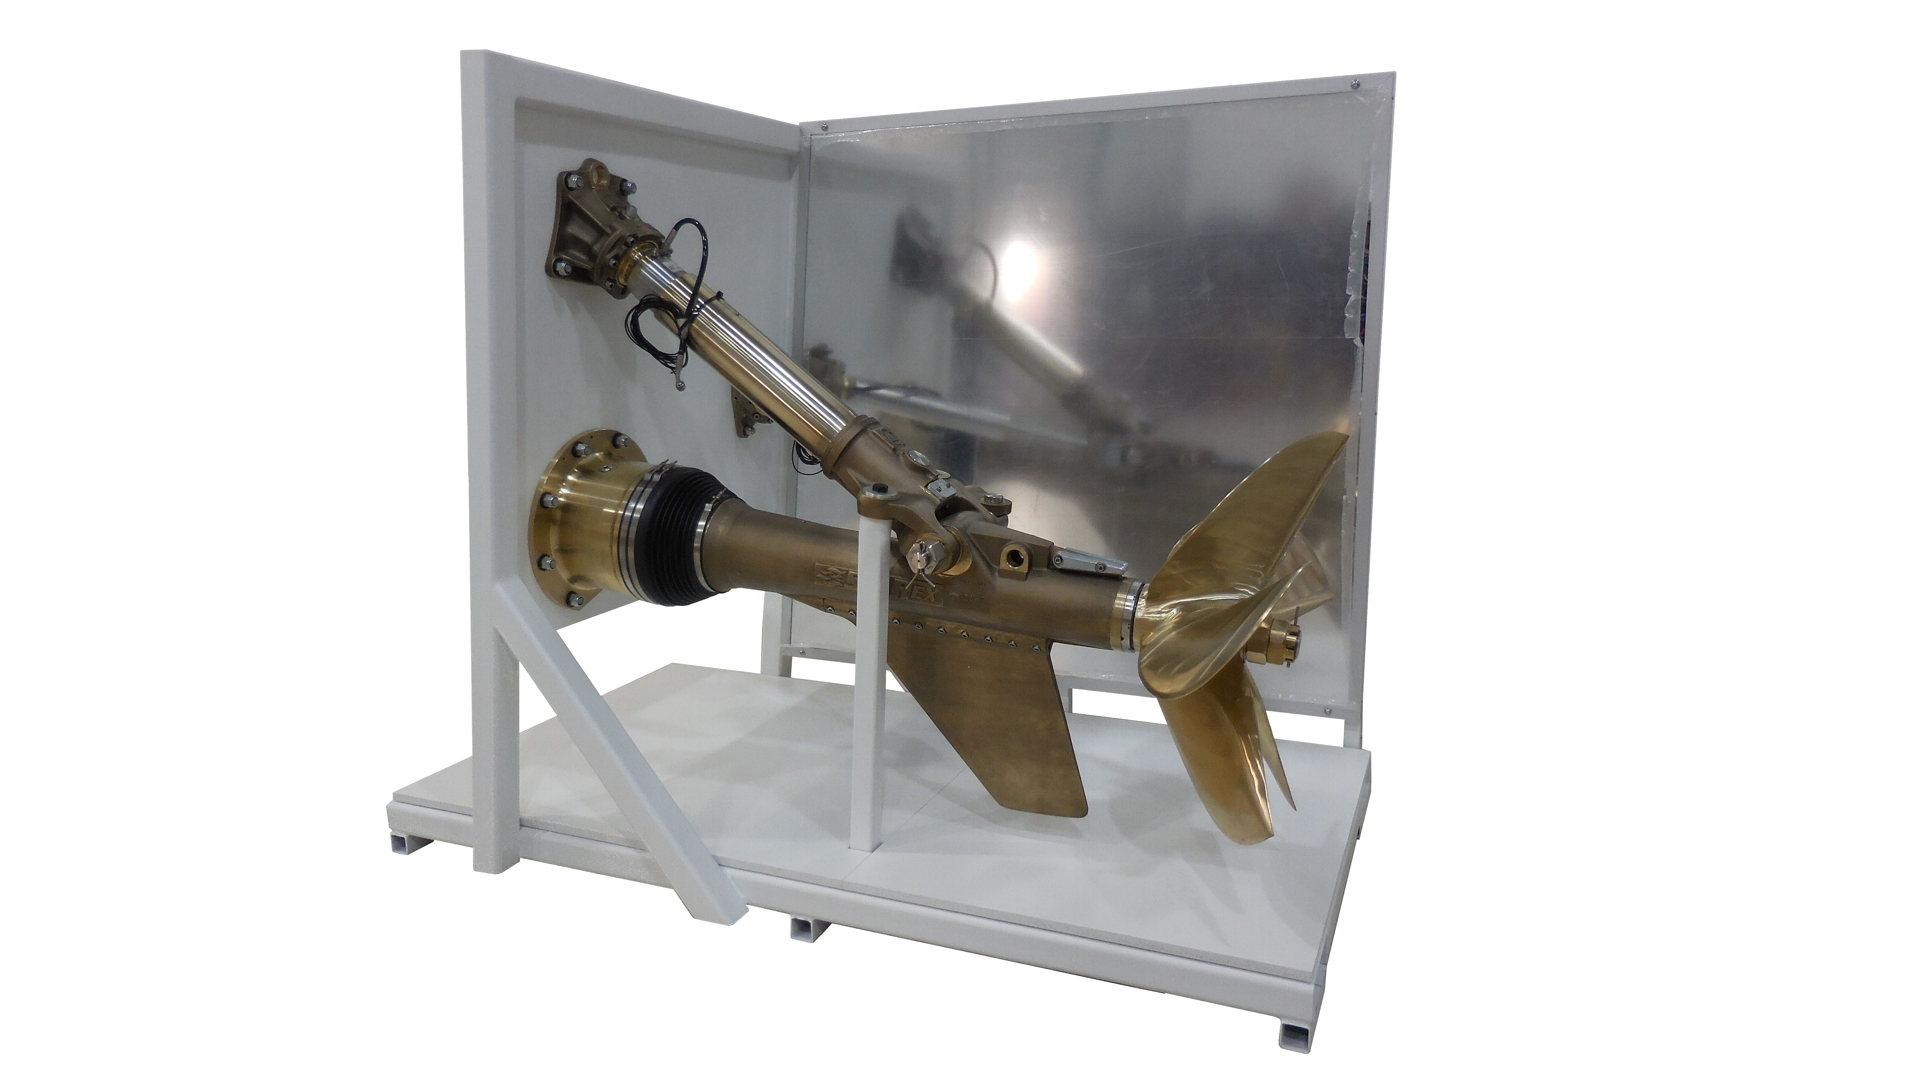 ZF Marine Shaft and Propeller Display